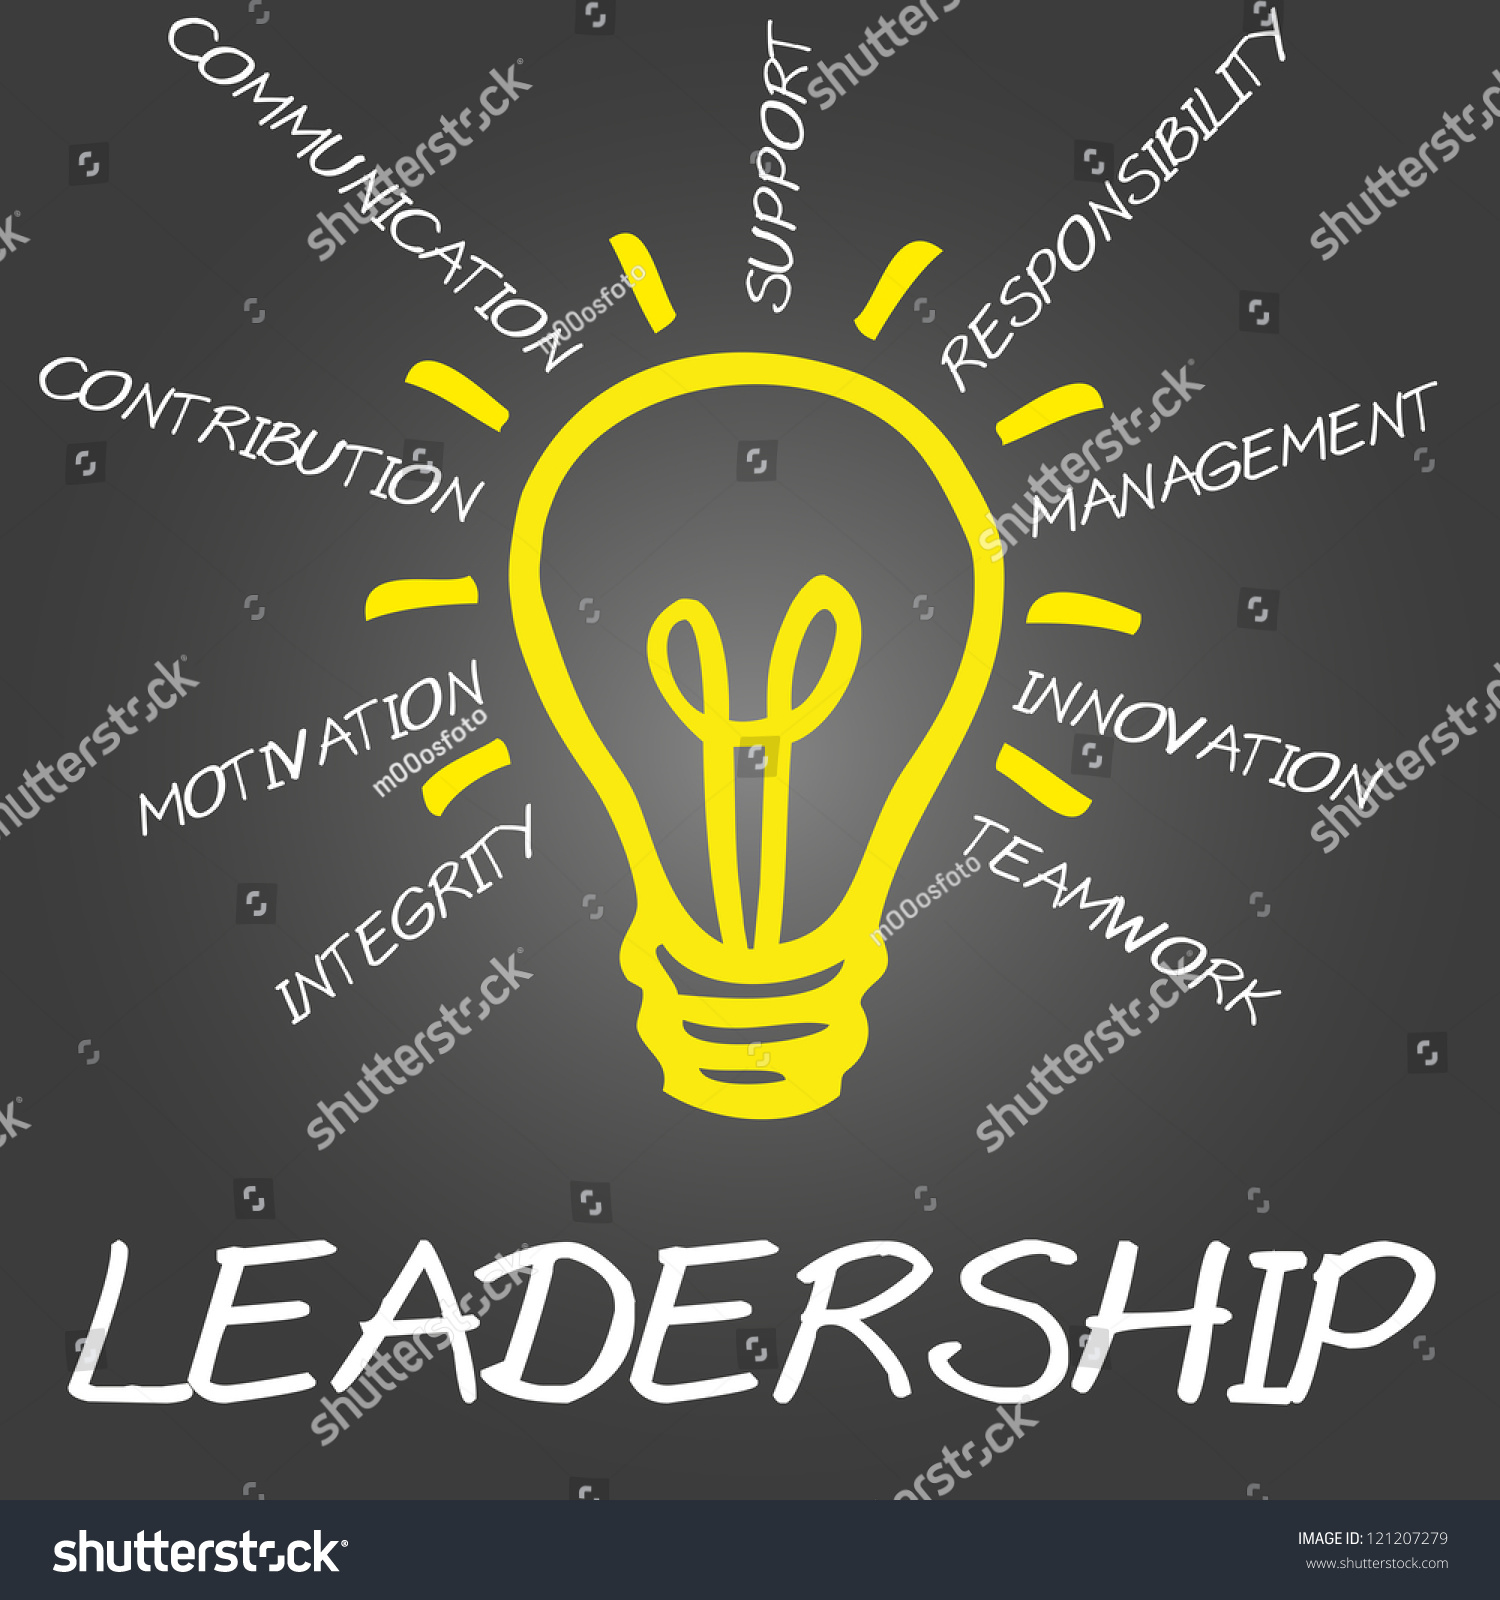 Concept Leadership Consists Support Integrity Influence Stock ...